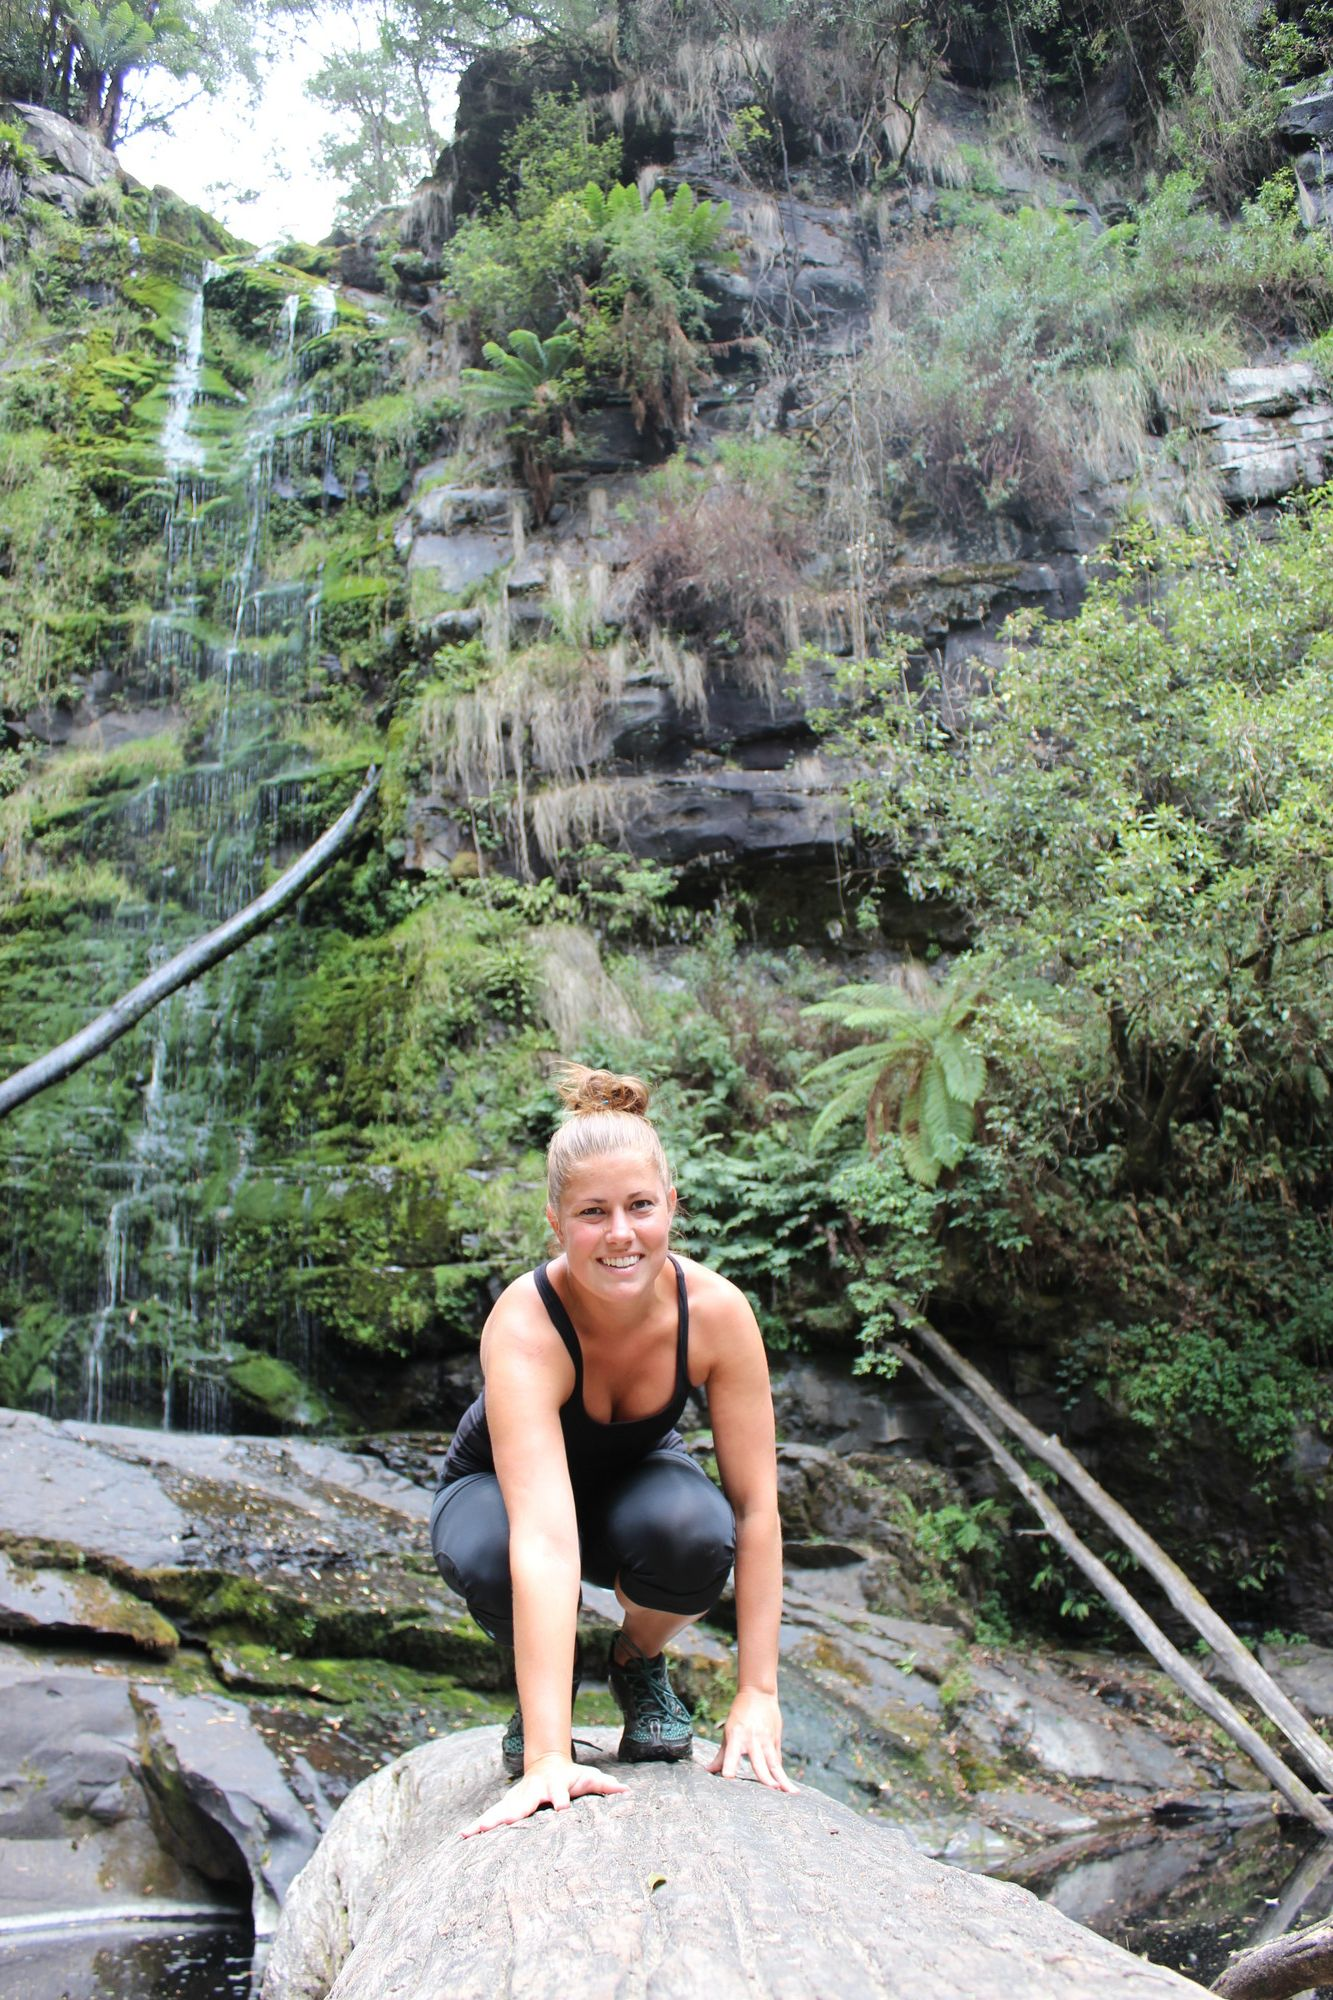 Alisa Messeroff, a 2002 Baldwin High School graduate, is one of 25 finalists for a dream job in the Australian outback.